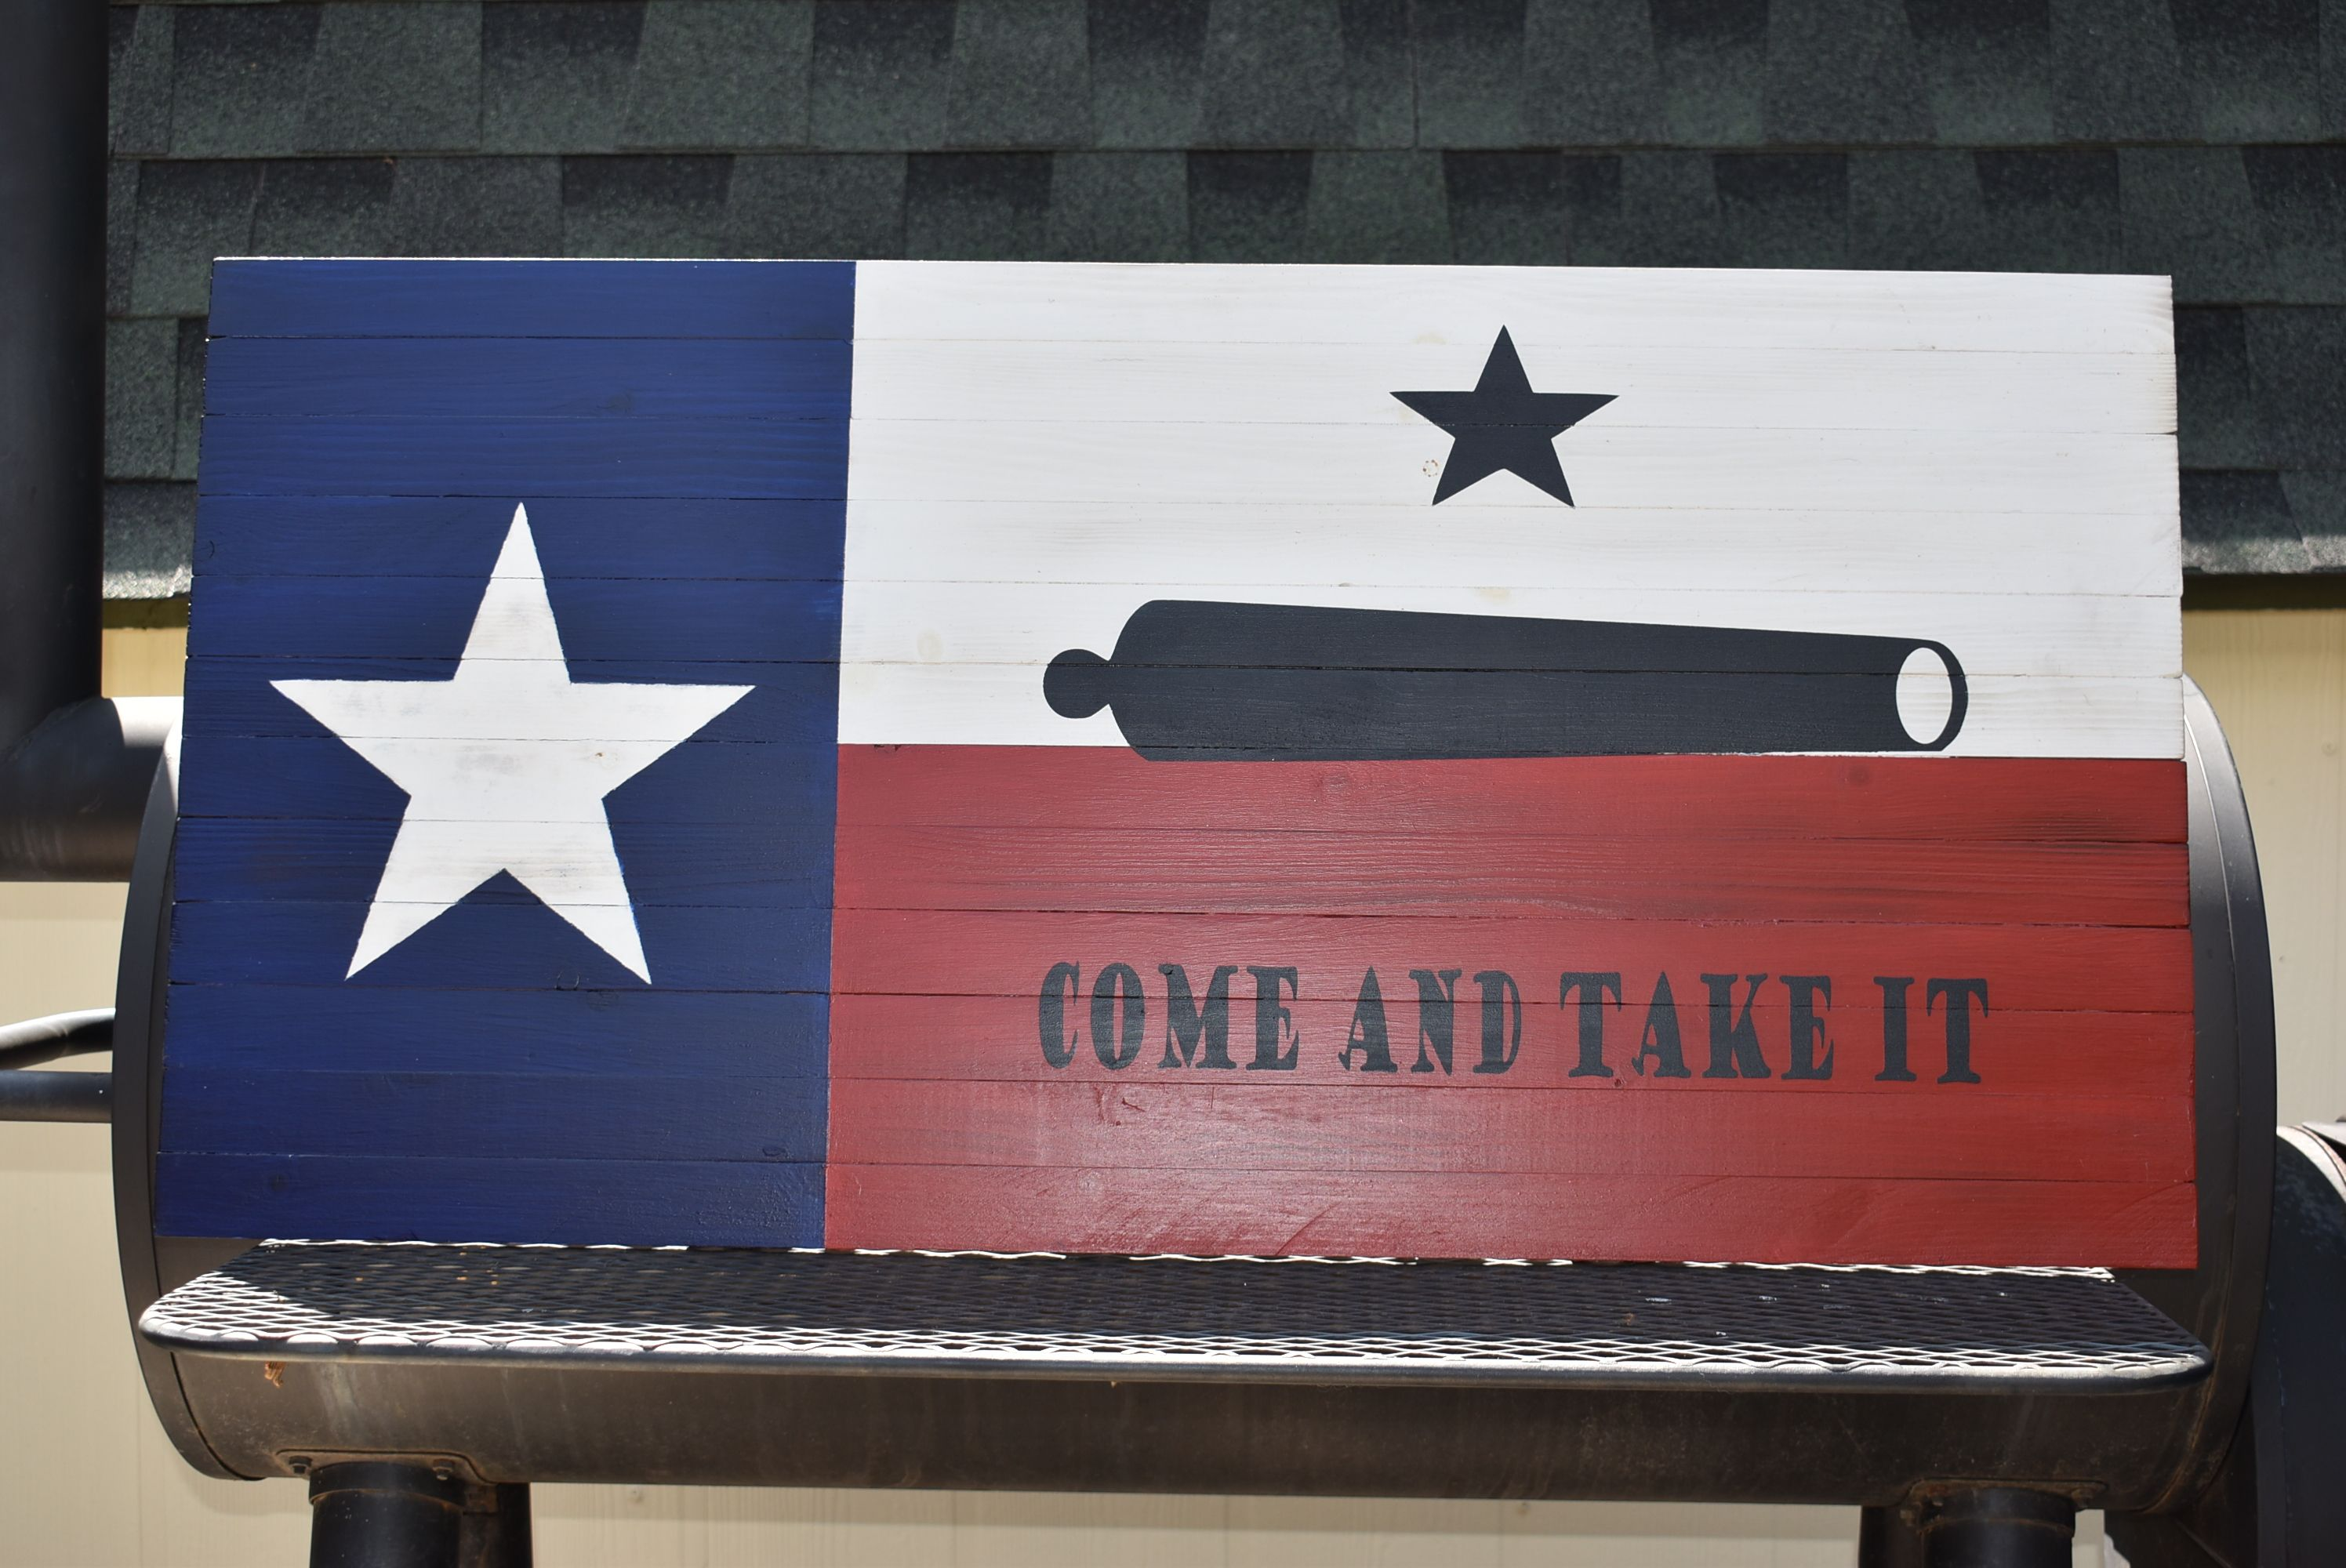 State Of Texas Flag With Come And Take It Come And Take It Wood Flag Military Flag